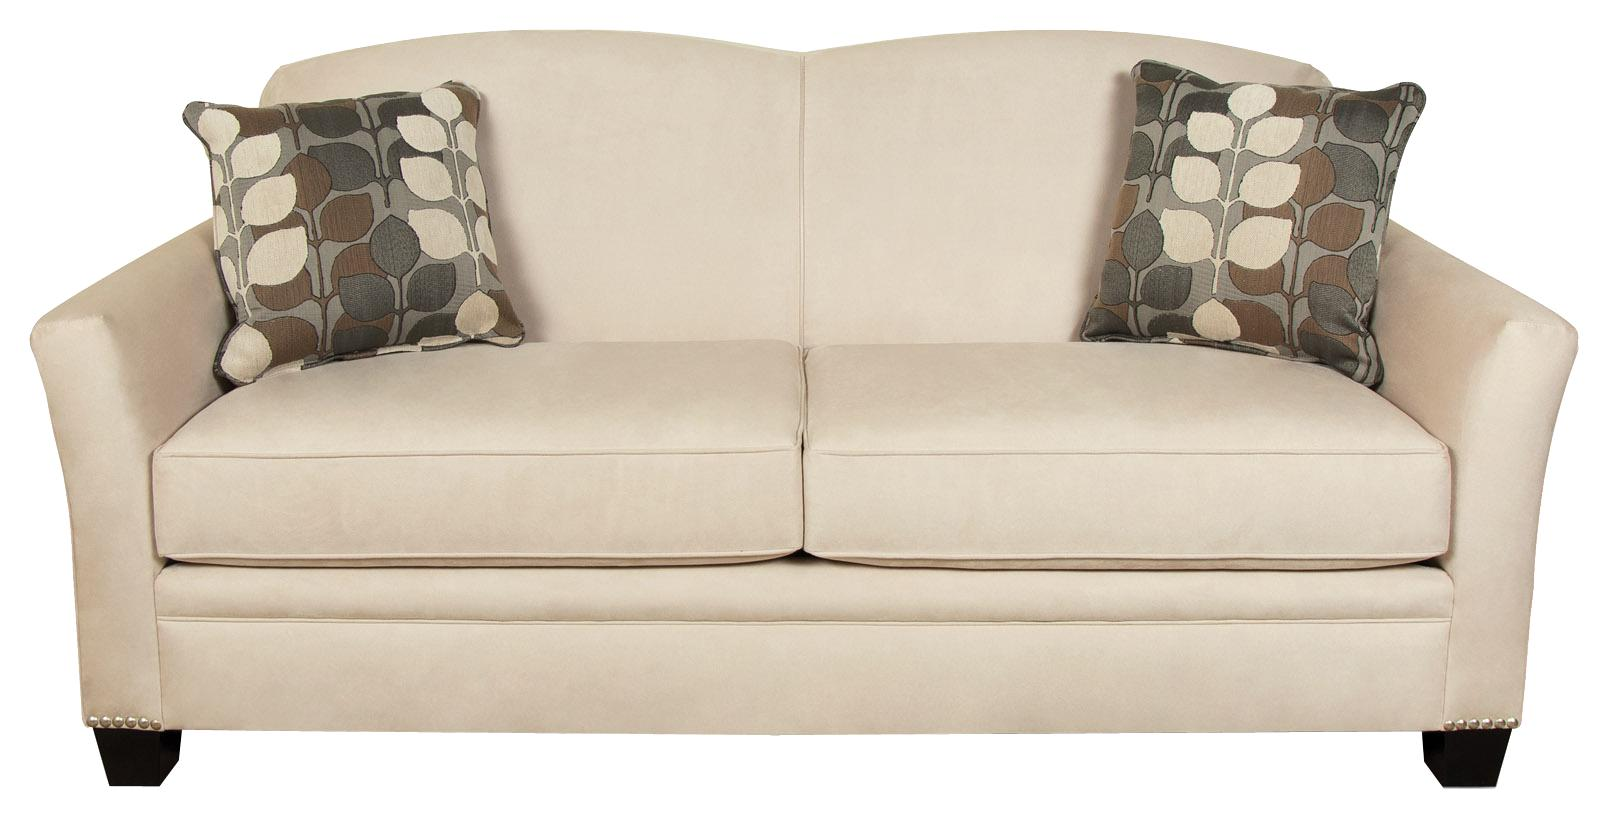 England Hilleary Sofa with Nailheads - Item Number: 5035N